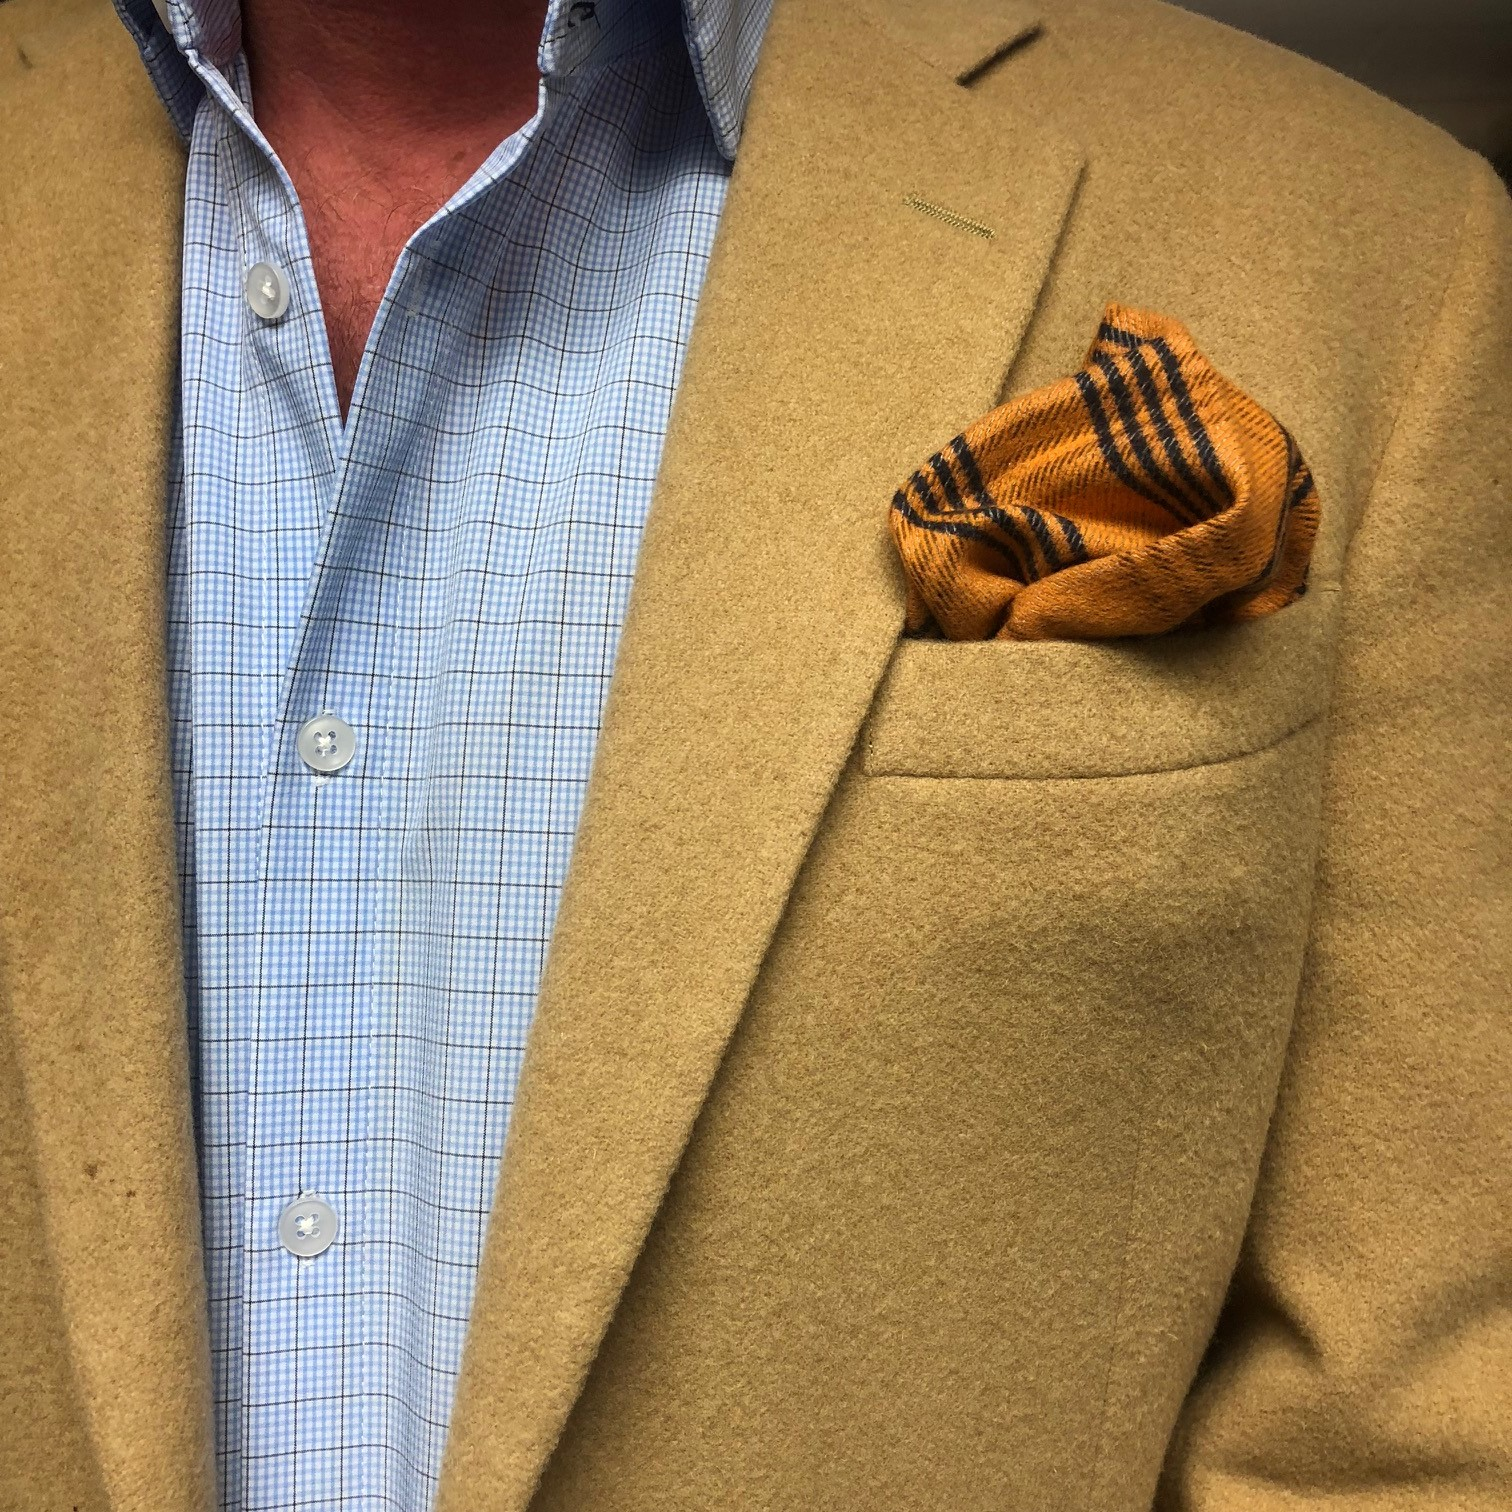 ORANGE & NAVY PLAID POCKET SQUARE